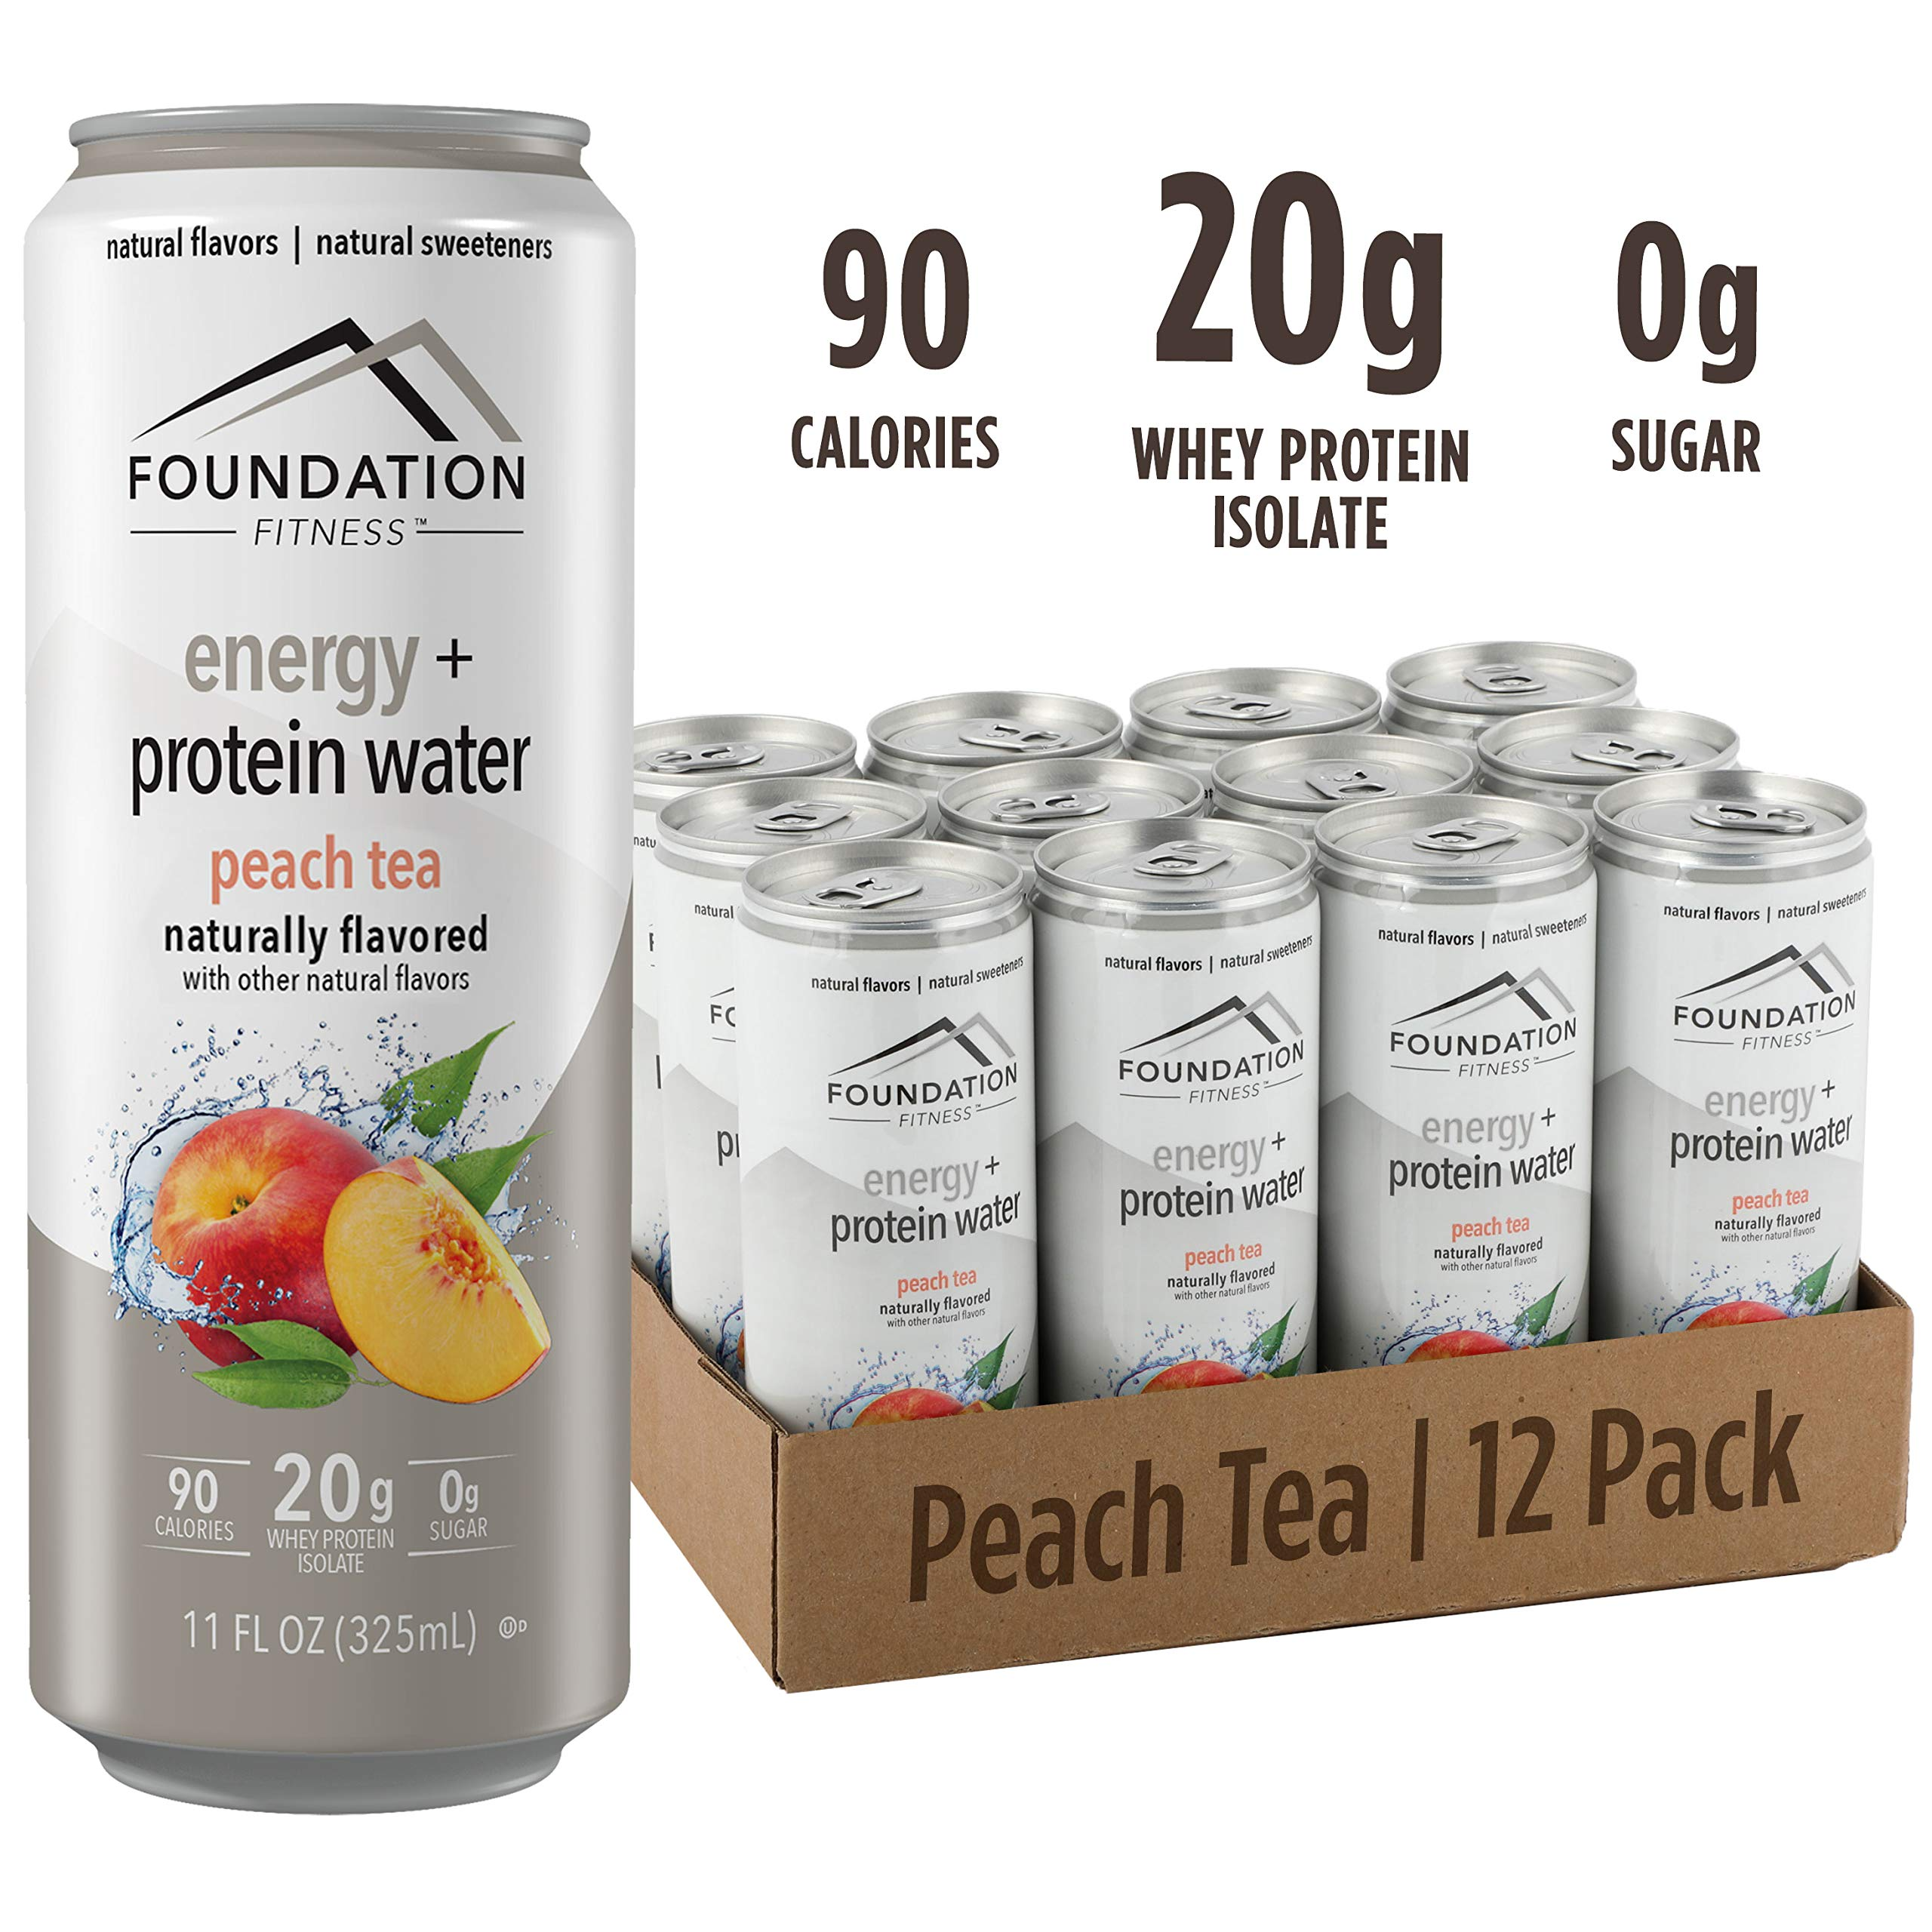 Foundation Fitness Energy & Protein Water, Peach Tea, Ready to Drink, 20g Protein, Natural Flavors & Sweetener, 0g Sugar, 11 fl oz, (Pack of 12) by Foundation Fitness